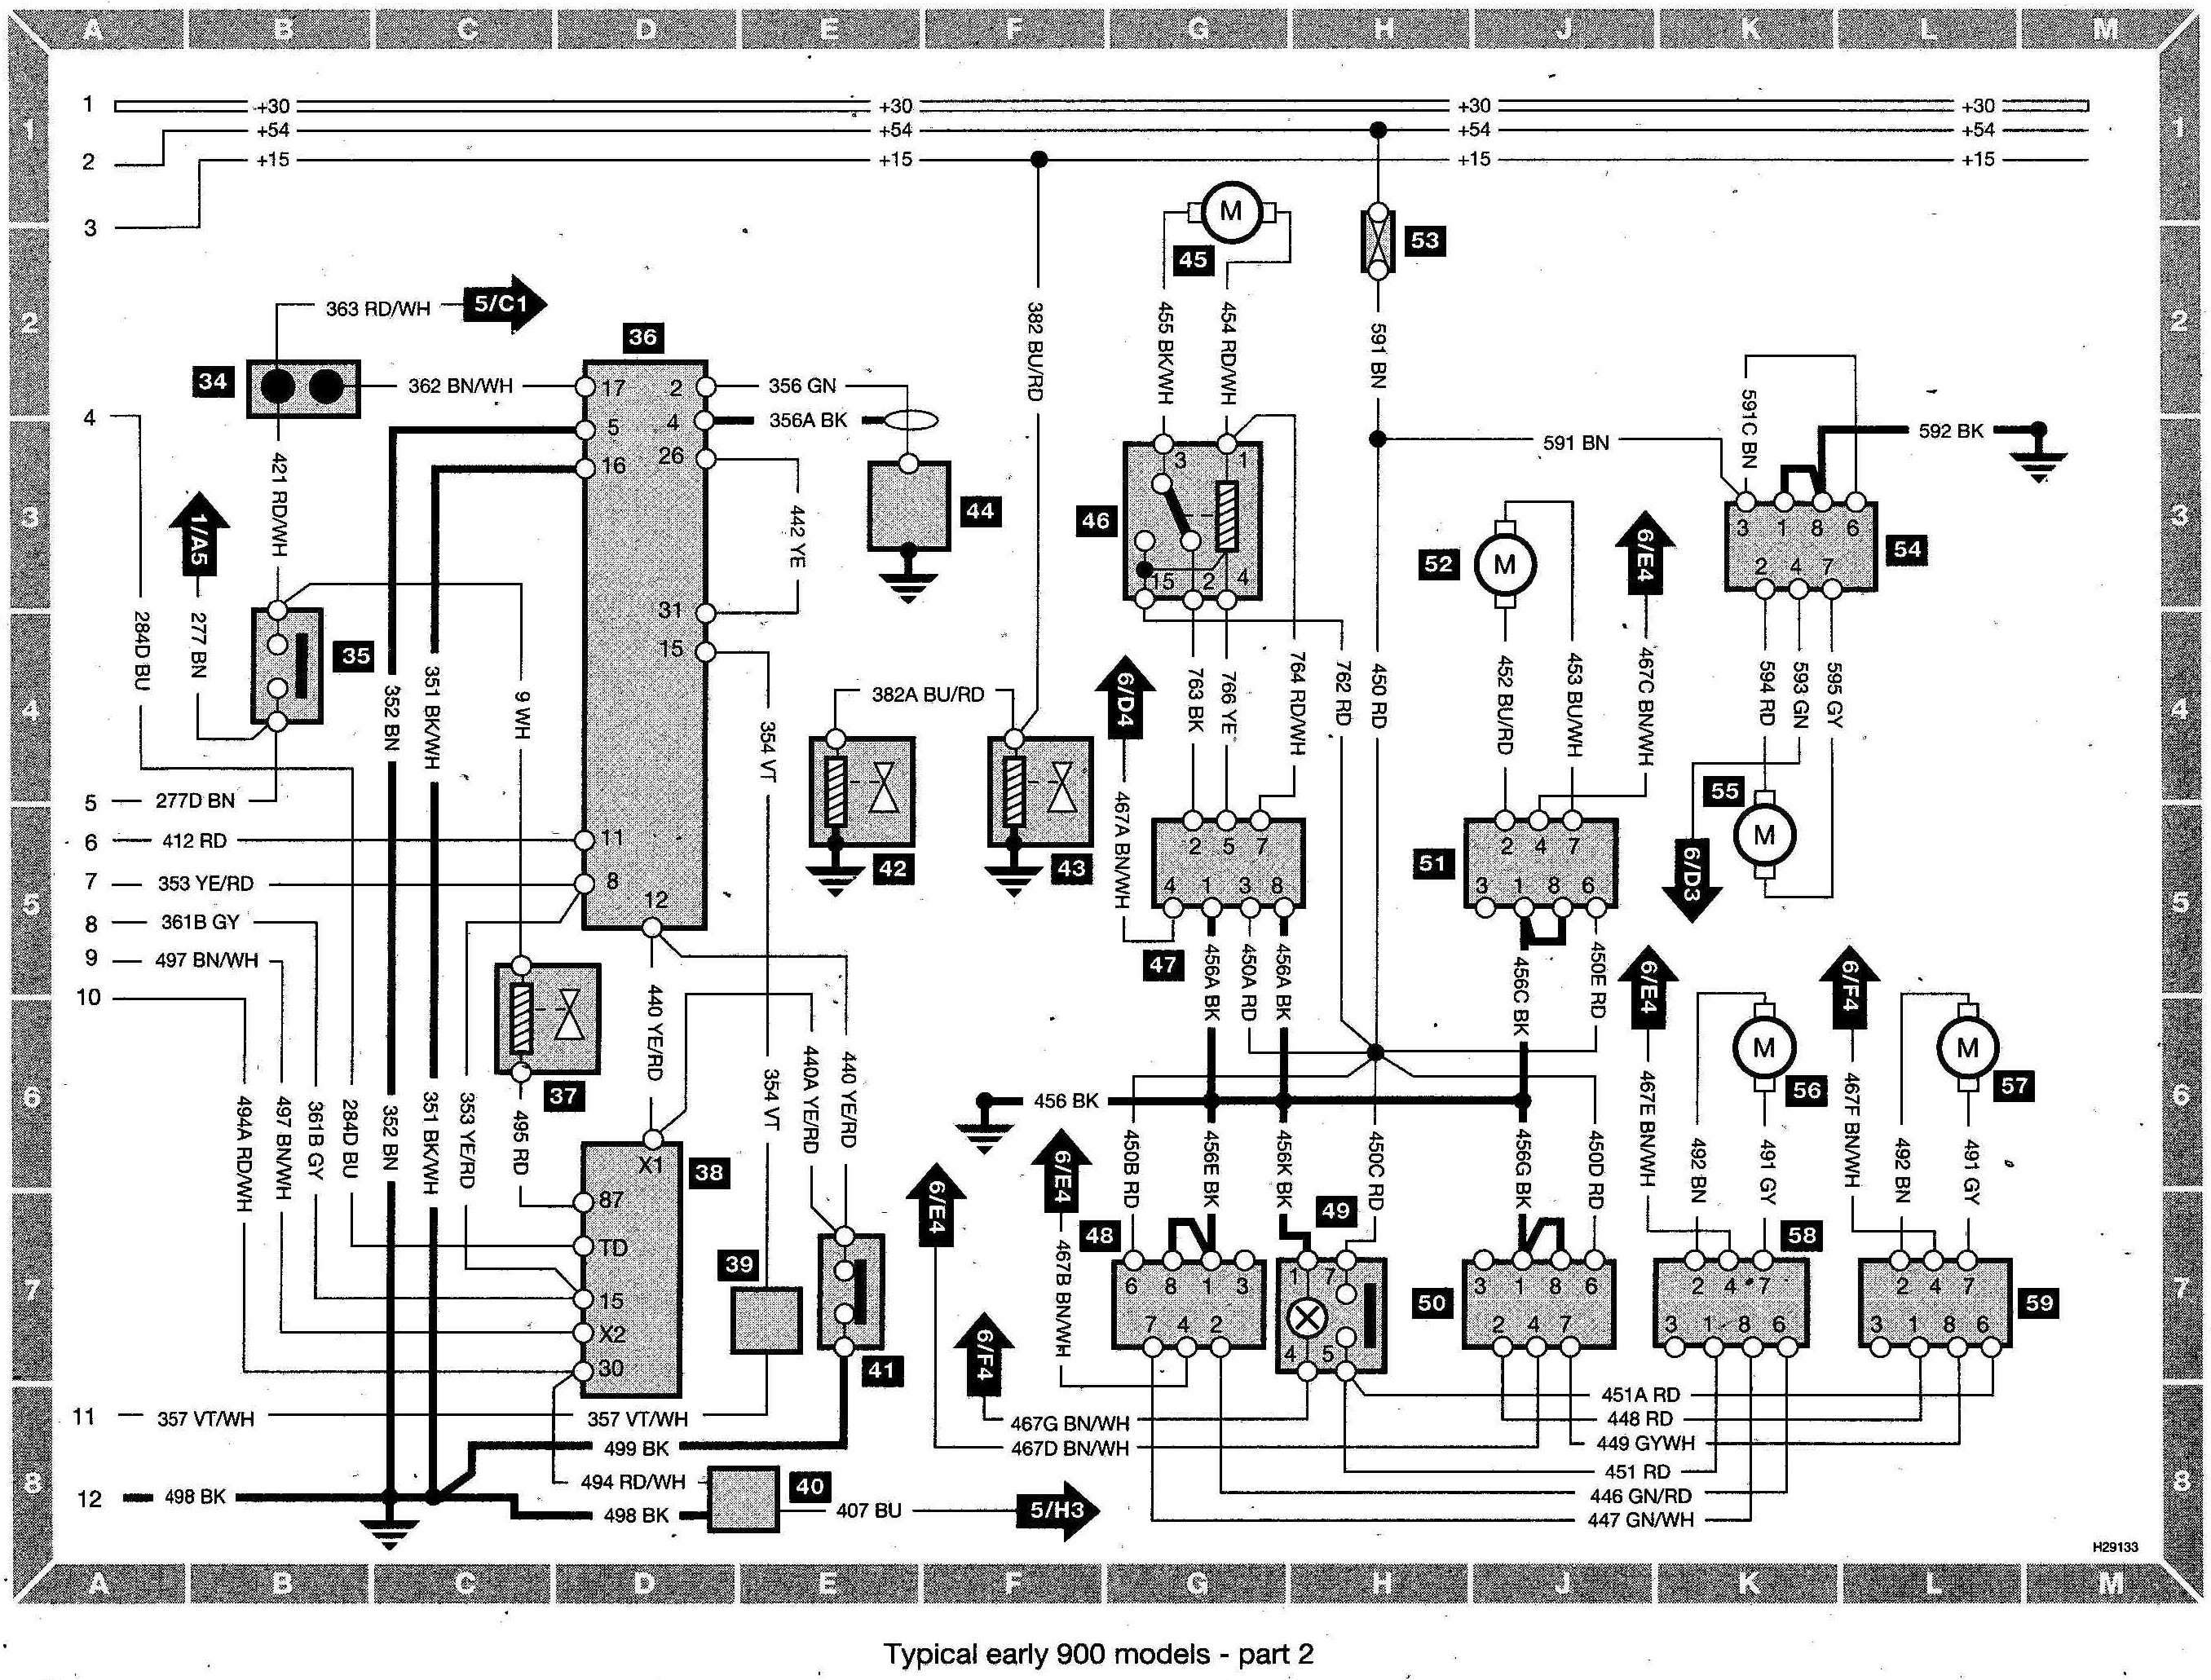 saab 9 5 fuse box location wiring library saab electrical schematics saab 9000 vacuum diagram diy enthusiasts wiring diagrams \\u2022 2006 saab 9 5 fuse